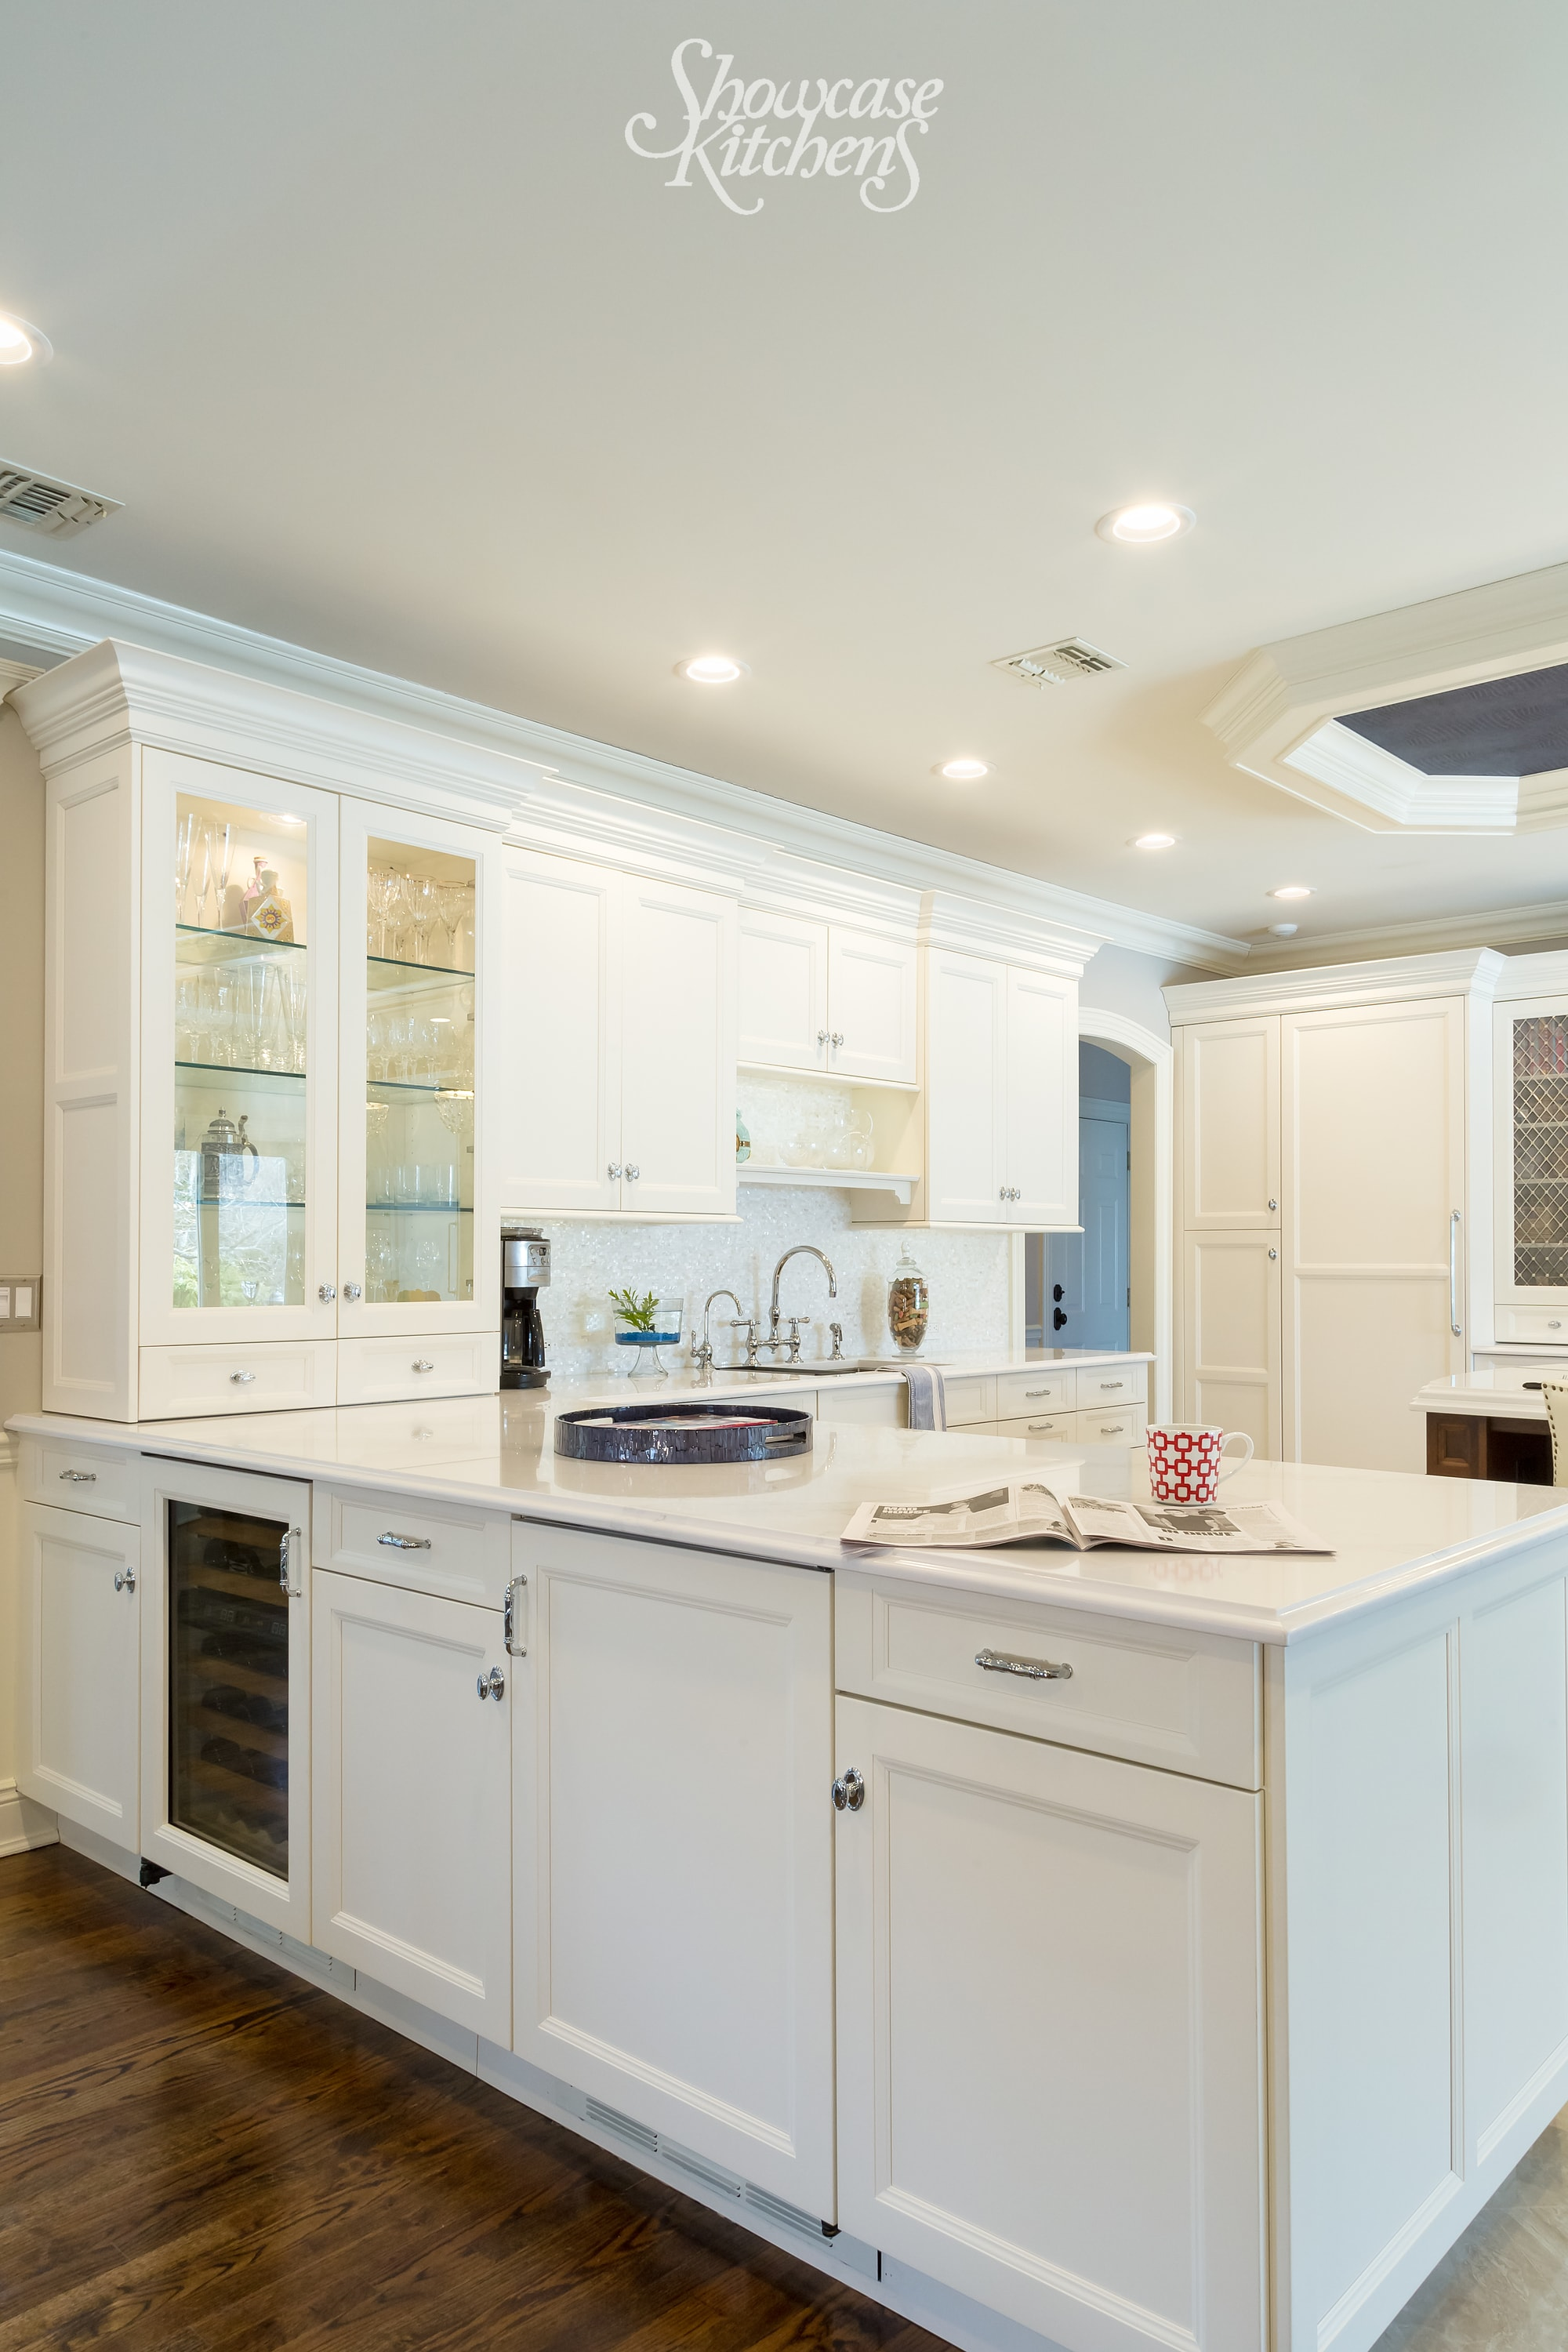 Transitional style kitchen with under cabinets and pull out drawers